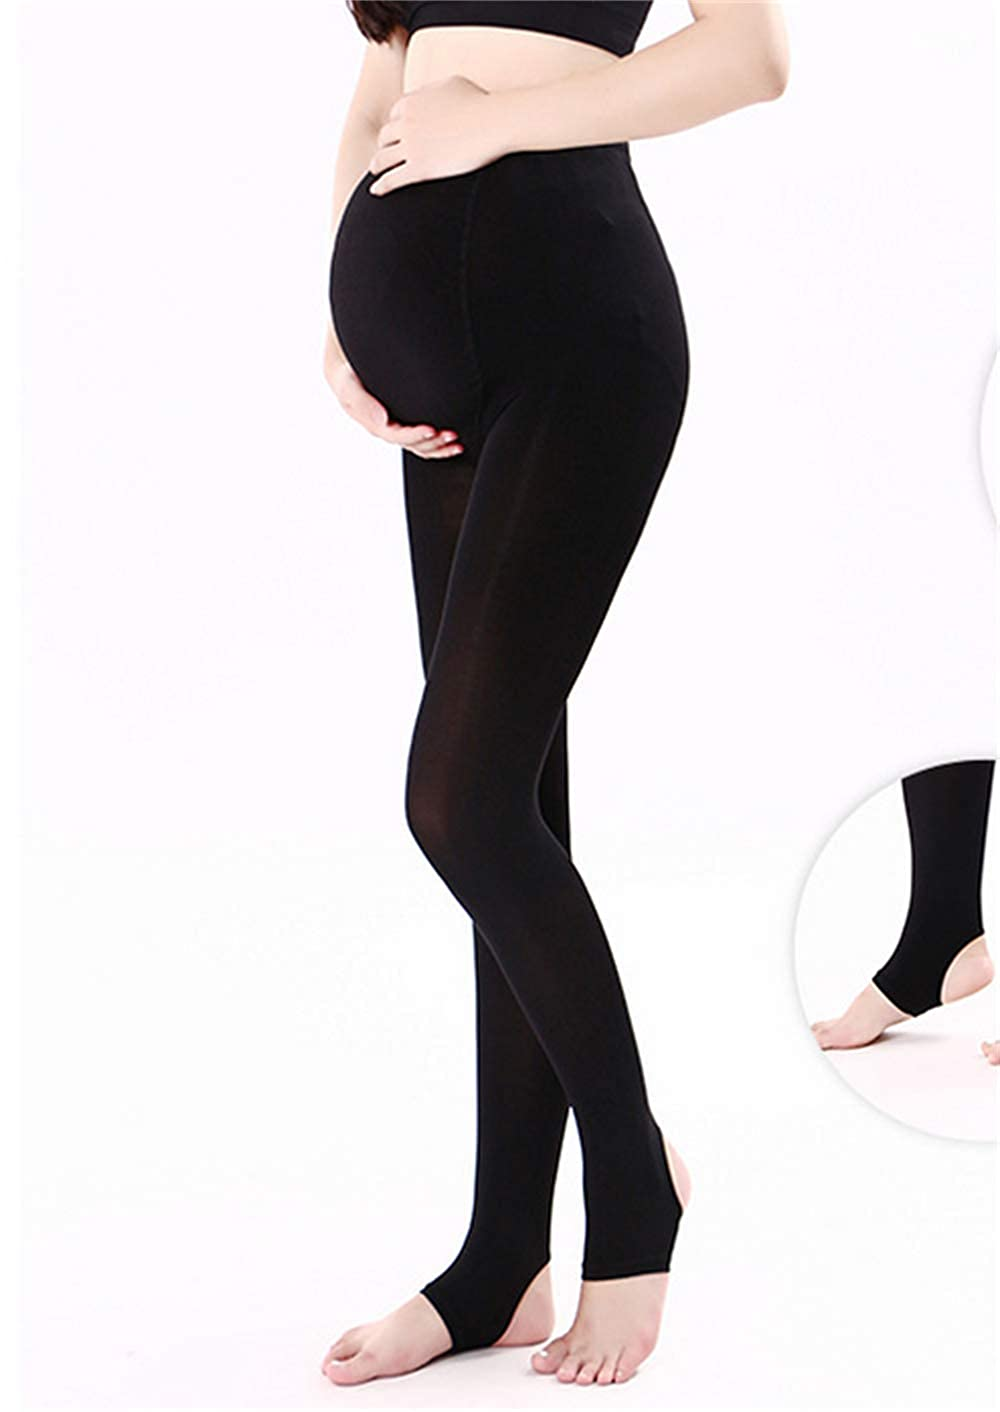 Maternity Tights Opaque Legging, ZUMIY Women's Pregnant Maternity Pantyhose Opaque Tights 320D- ADJUSTABLE Waist Band Black)